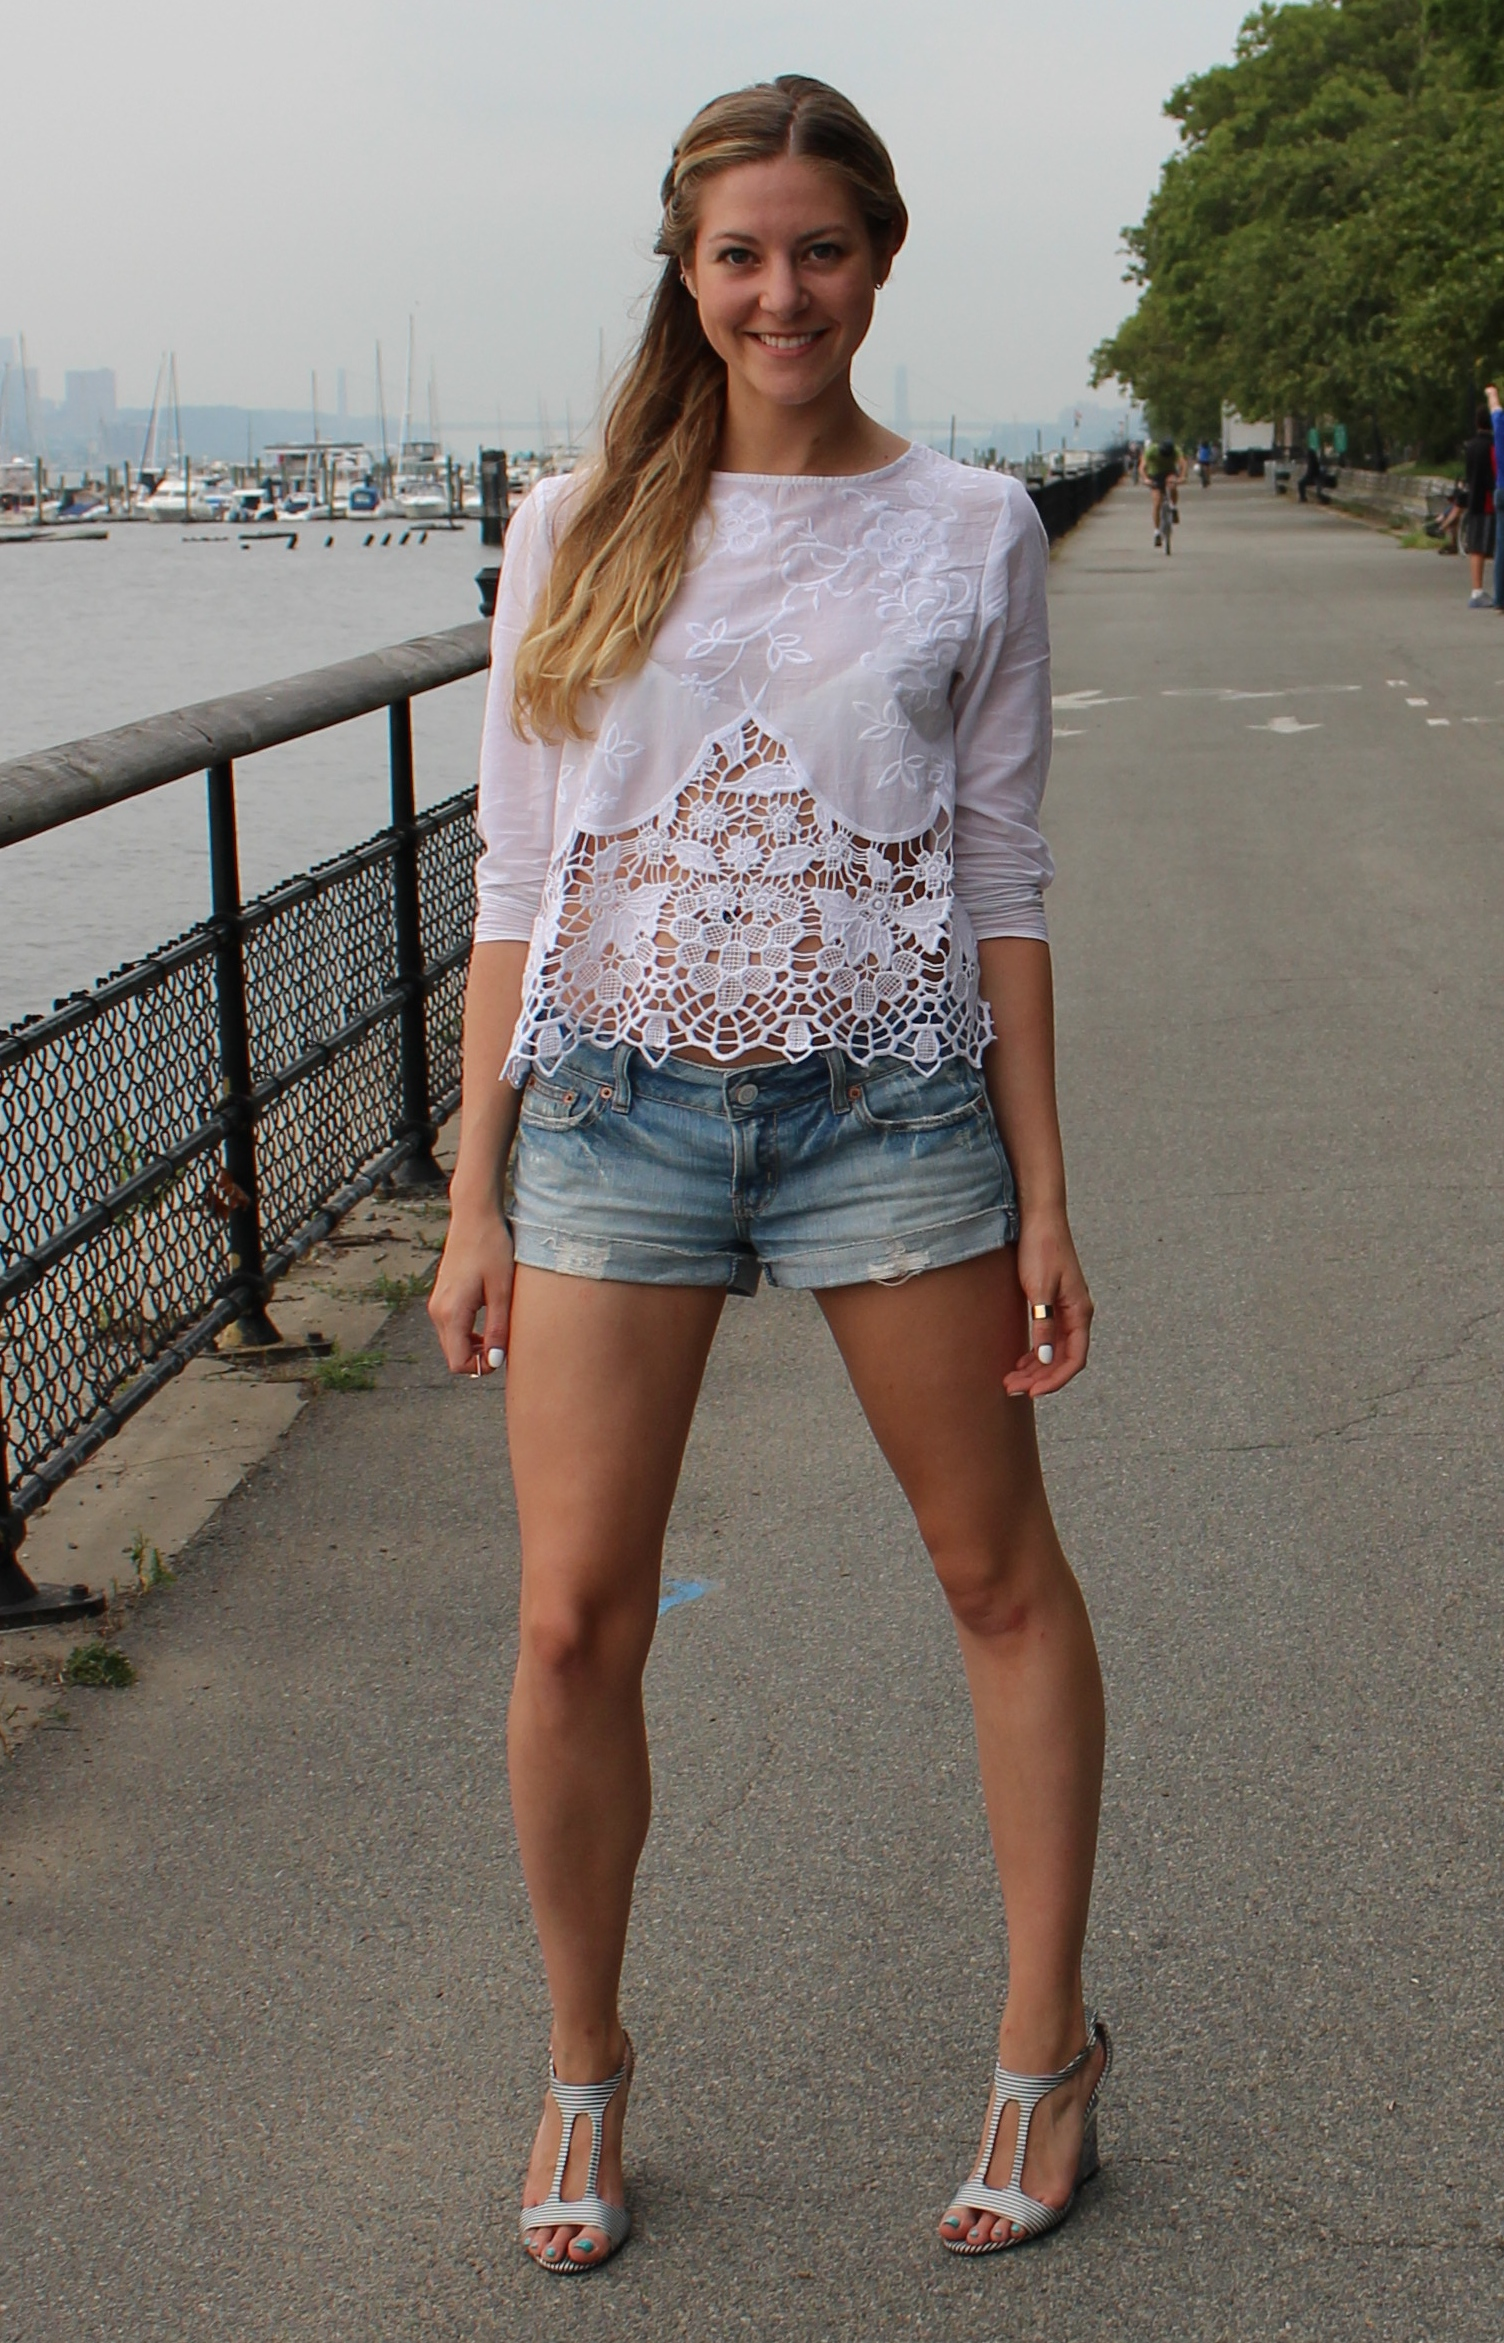 23924c468ef5 Ripped jeans and a crocheted white top with an open back is my idea of the perfect  summer outfit. After work